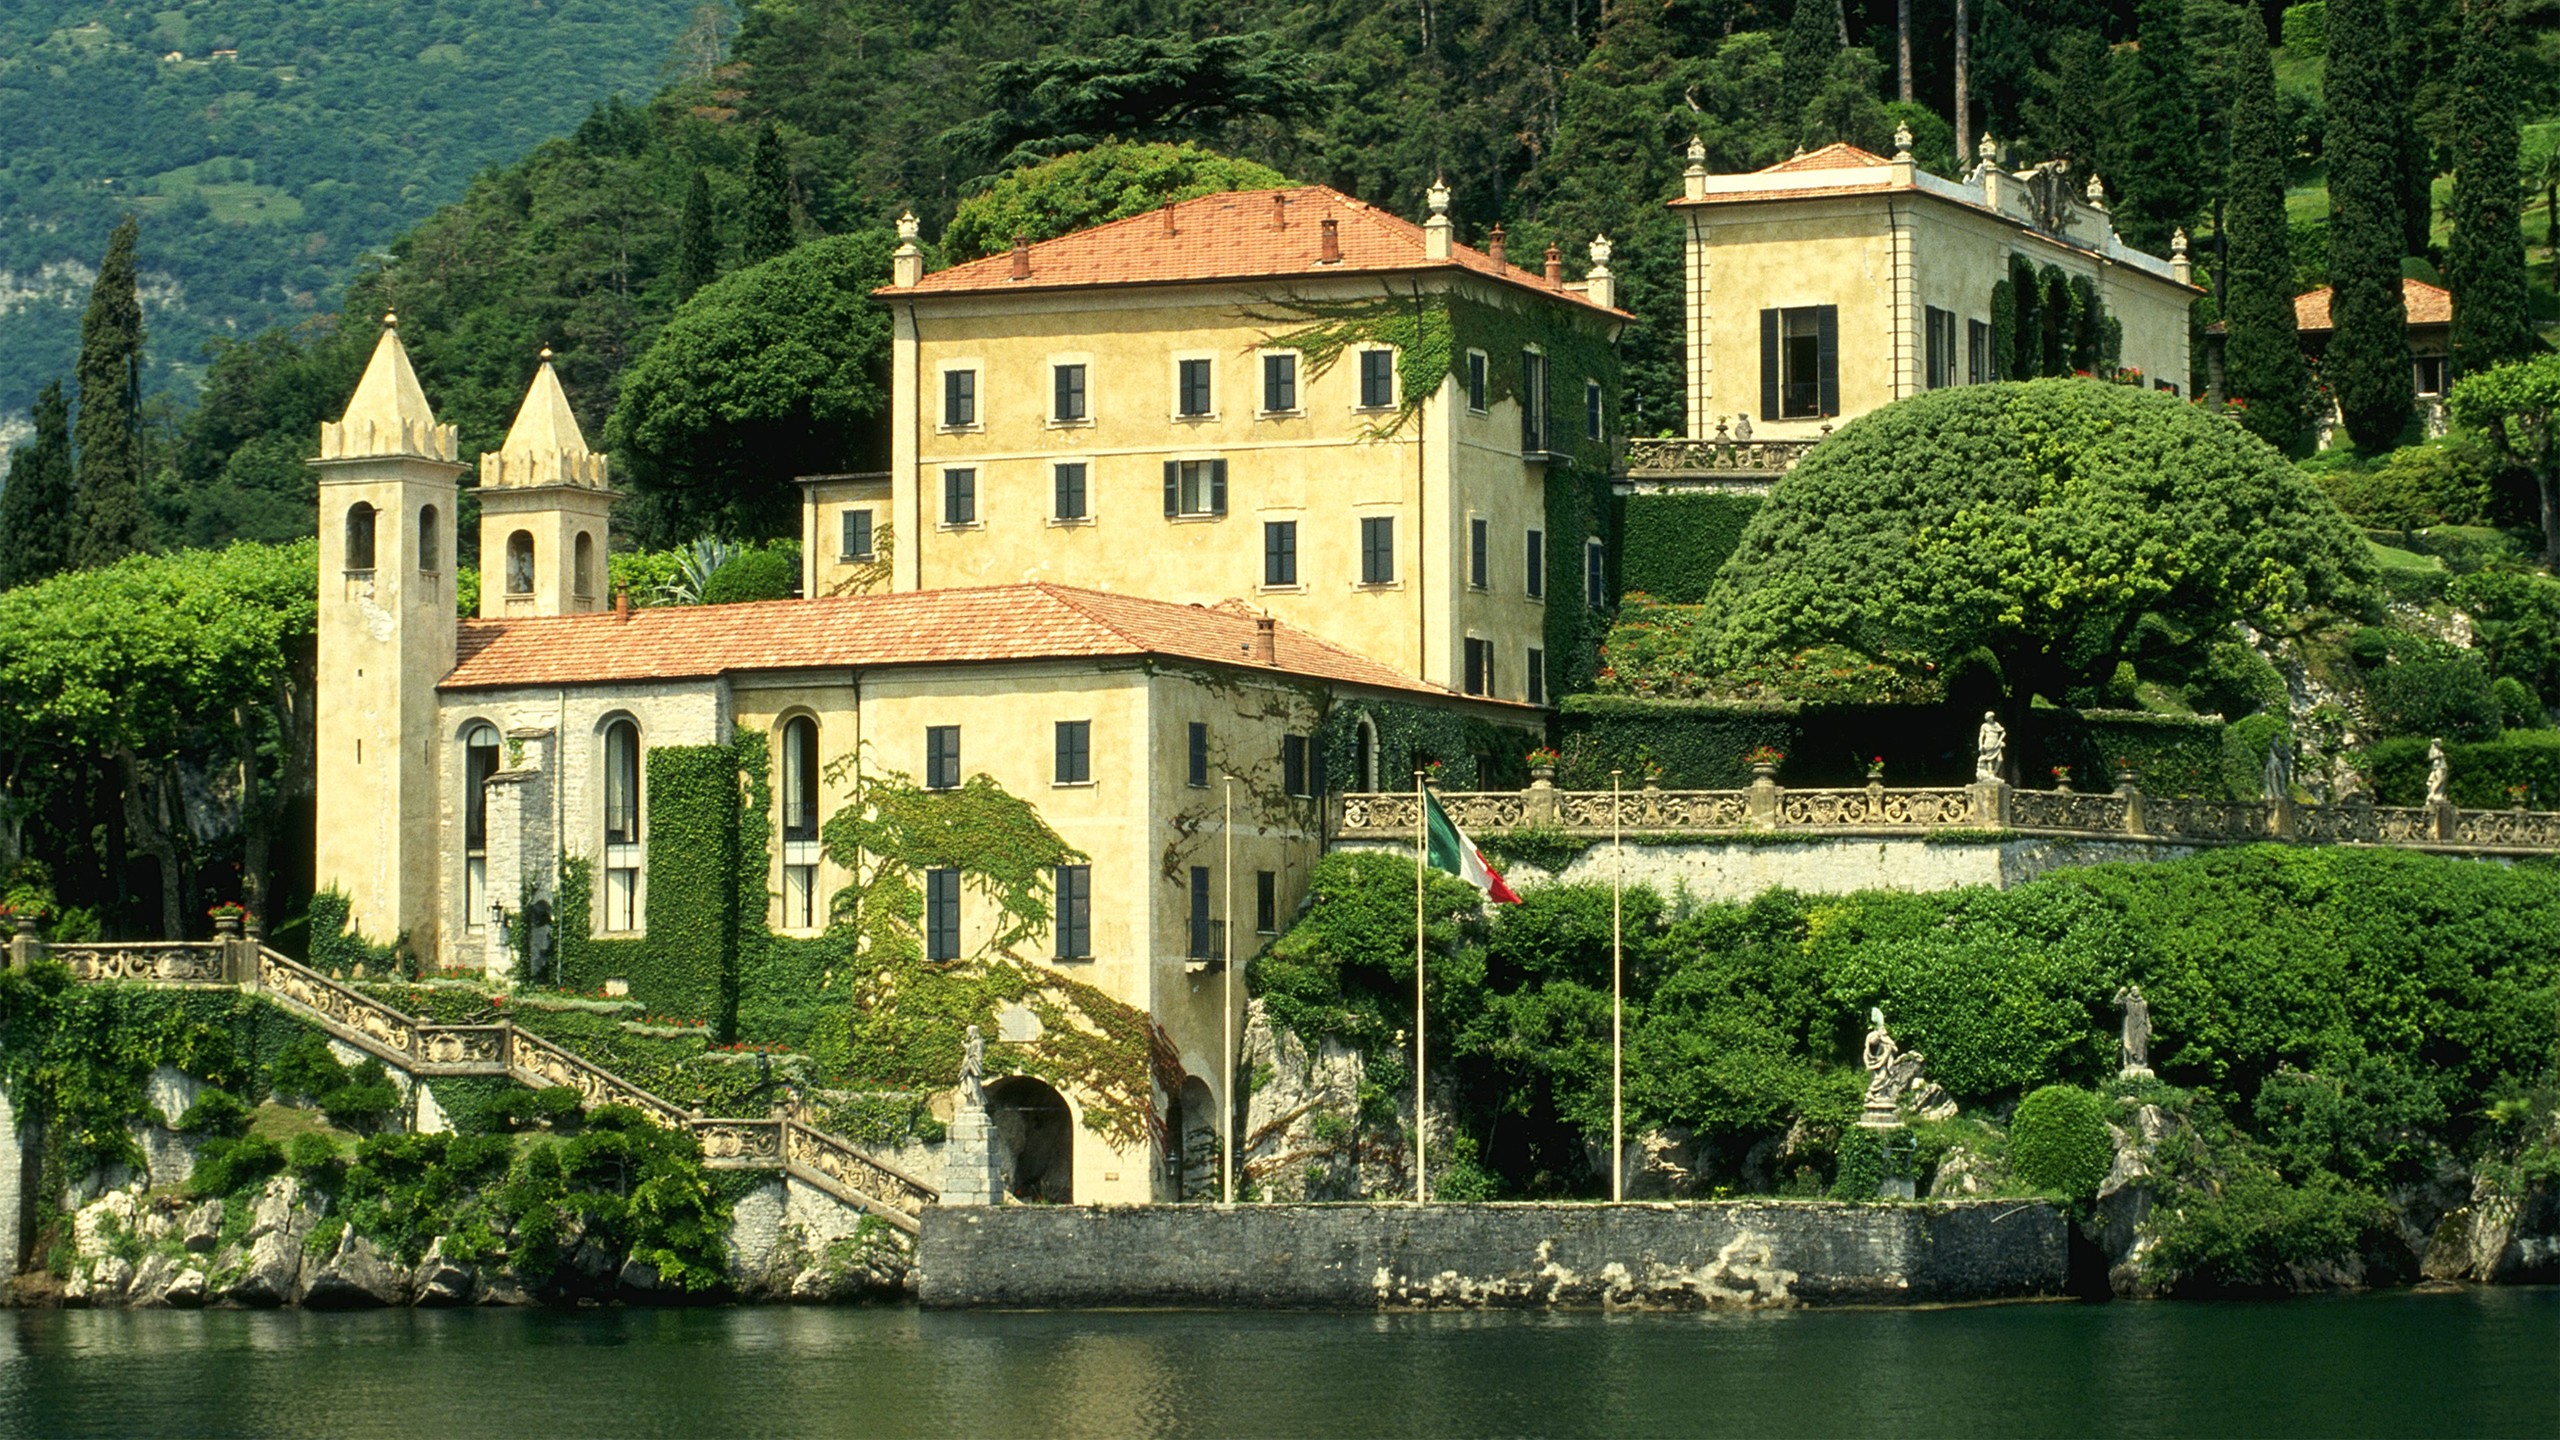 Italy architecture houses Villas HD Wallpaper